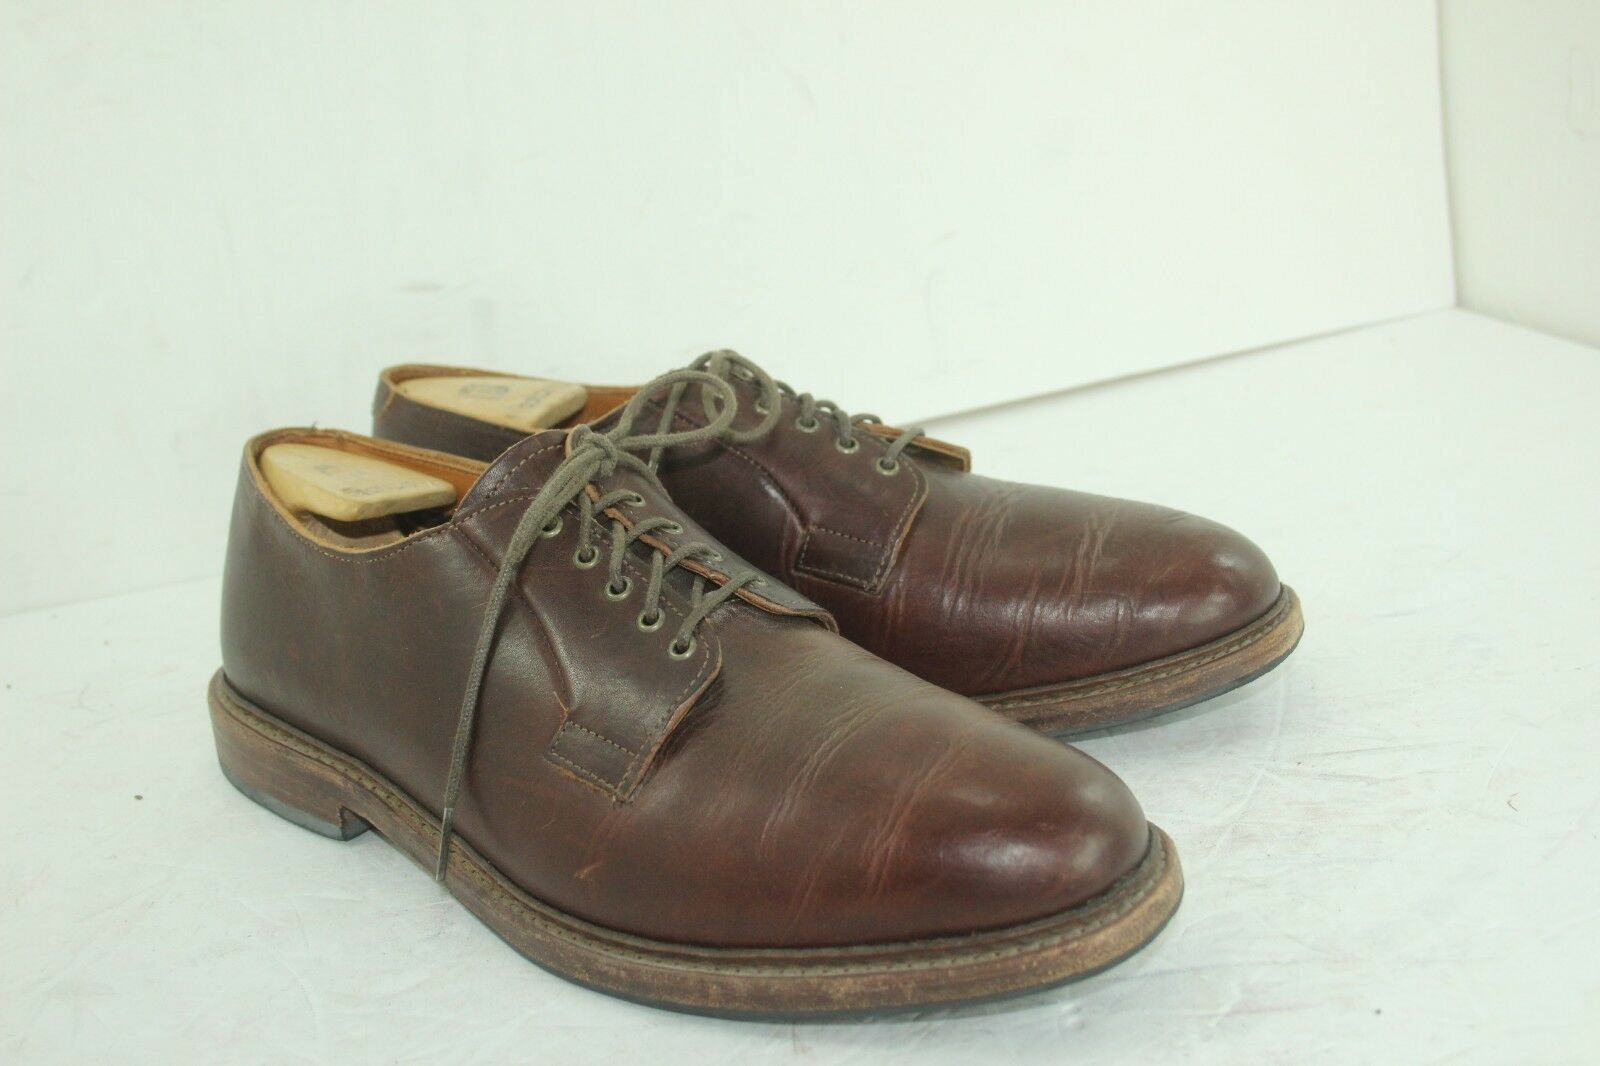 ALLEN EDMONDS CITY RAPID CITY EDMONDS SZ 11 D LEATHER MADE IN USA IN GREAT CONDITION 3ec2f7